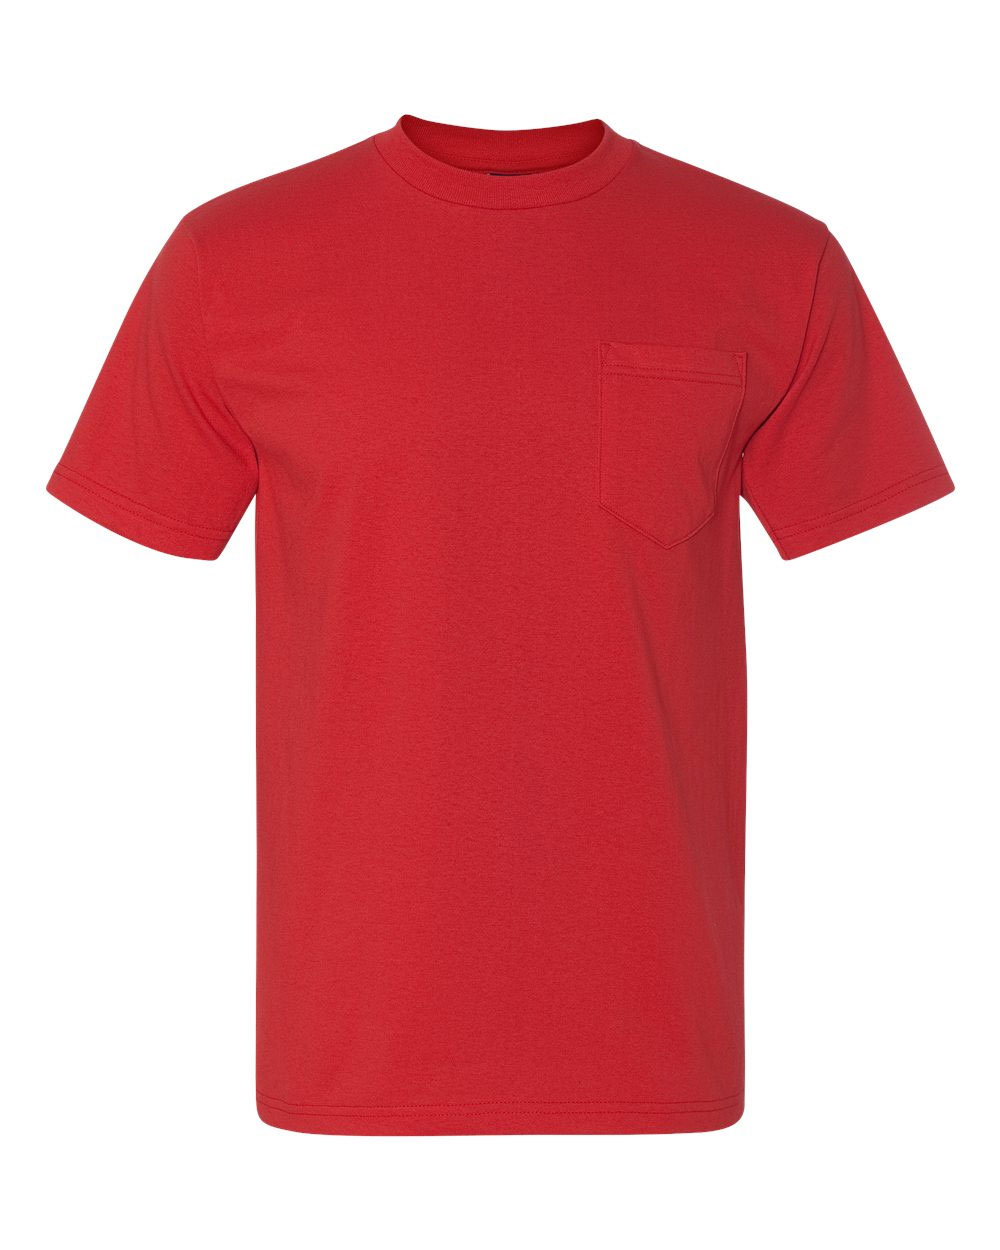 USA Union Made Mens Pocket T-Shirt